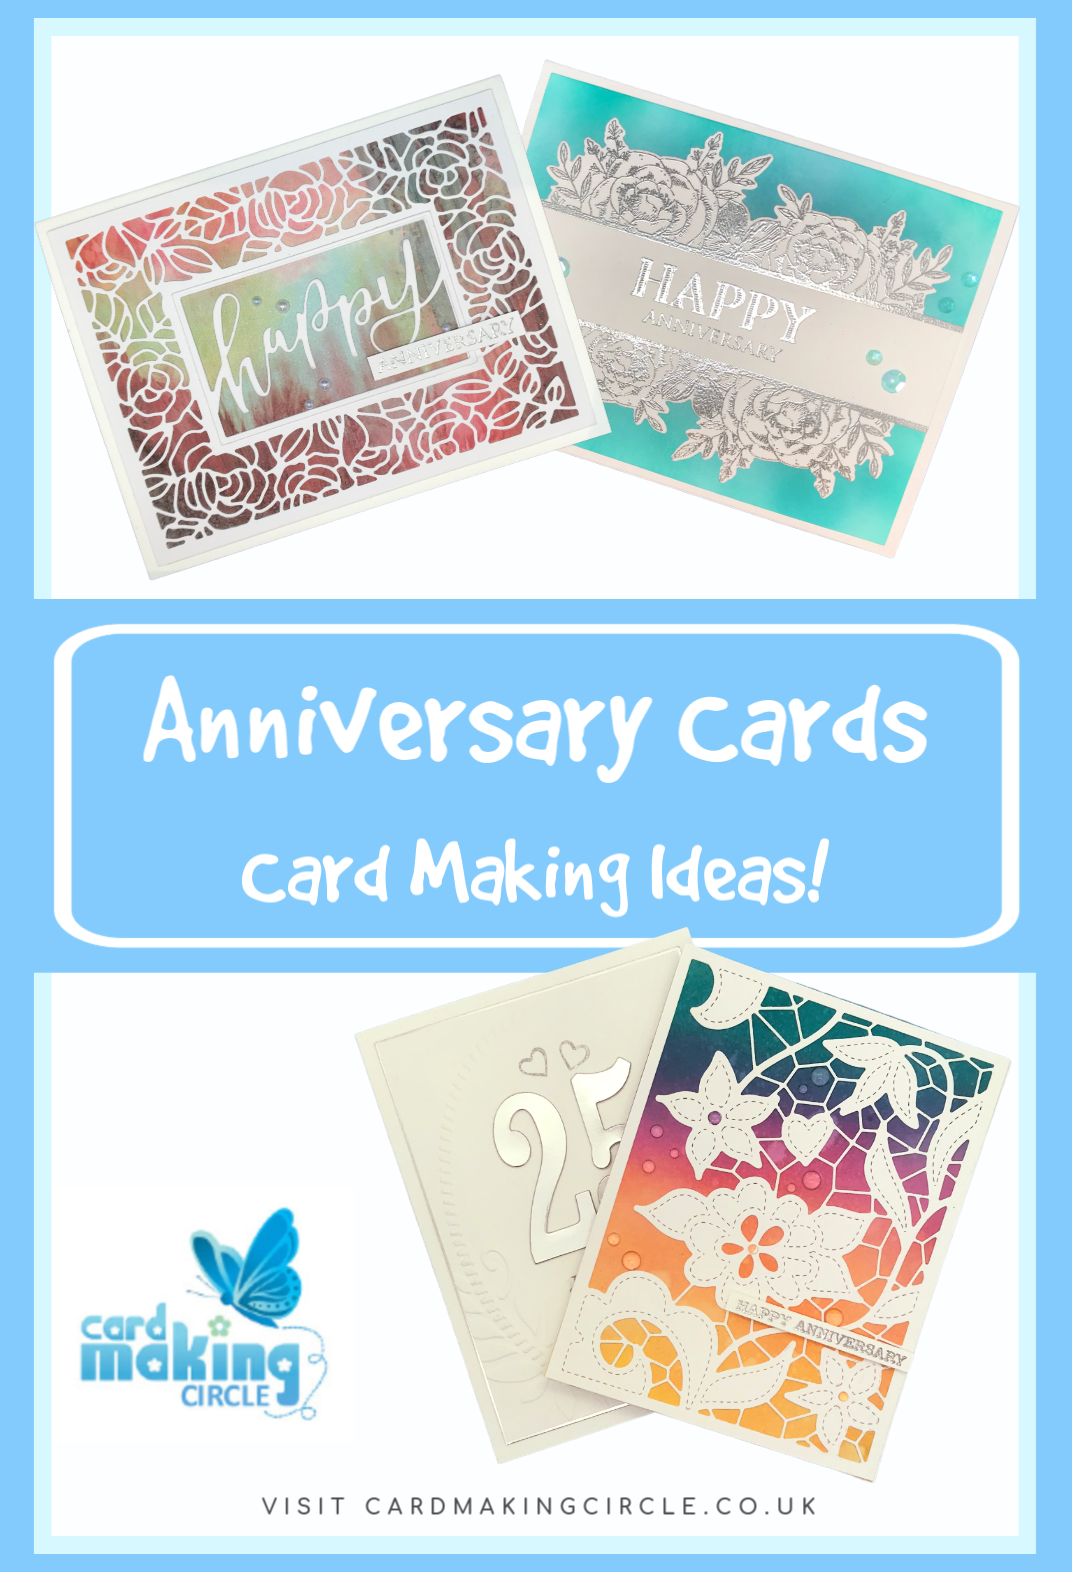 Wedding anniversary cards to recognise the years you have spent together. #weddinganniversarycards #anniversarycards #cardmakingideas